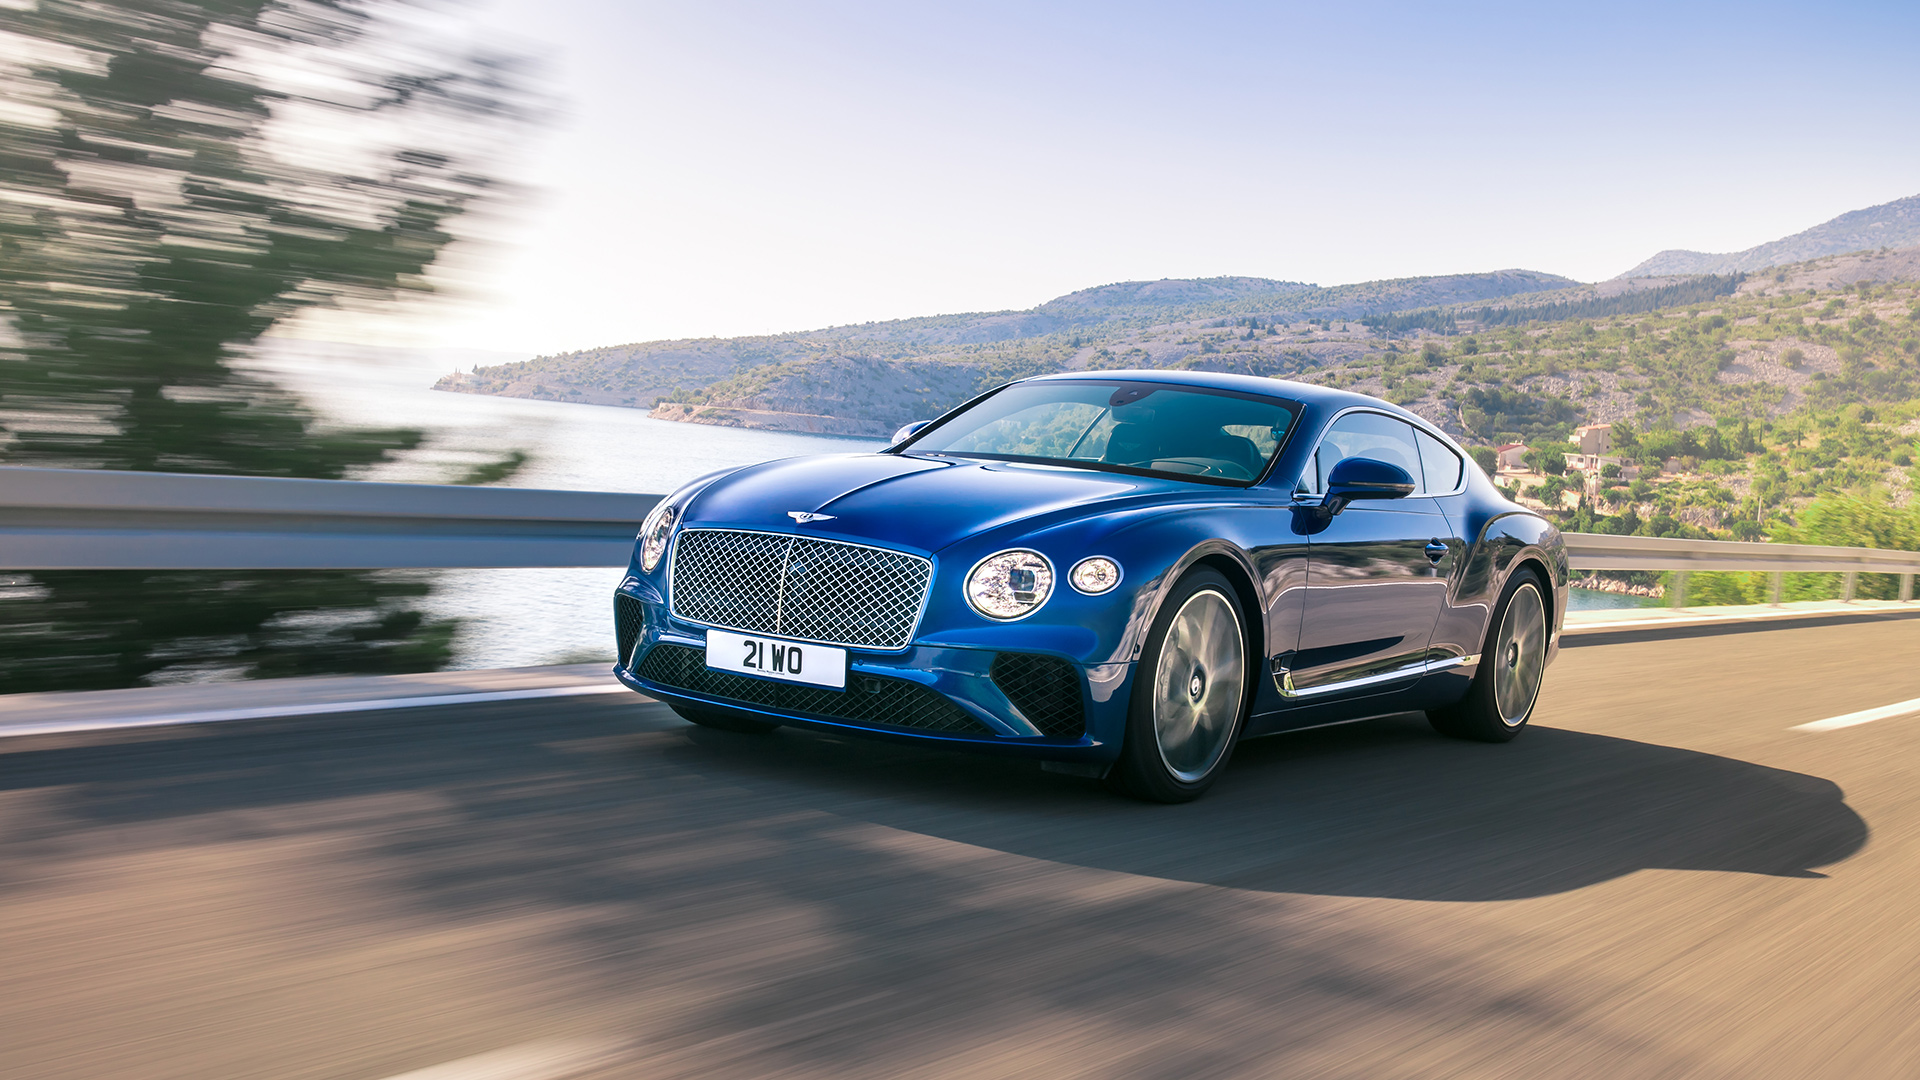 Bentley Coupe Used Cars For Sale Autotrader Uk